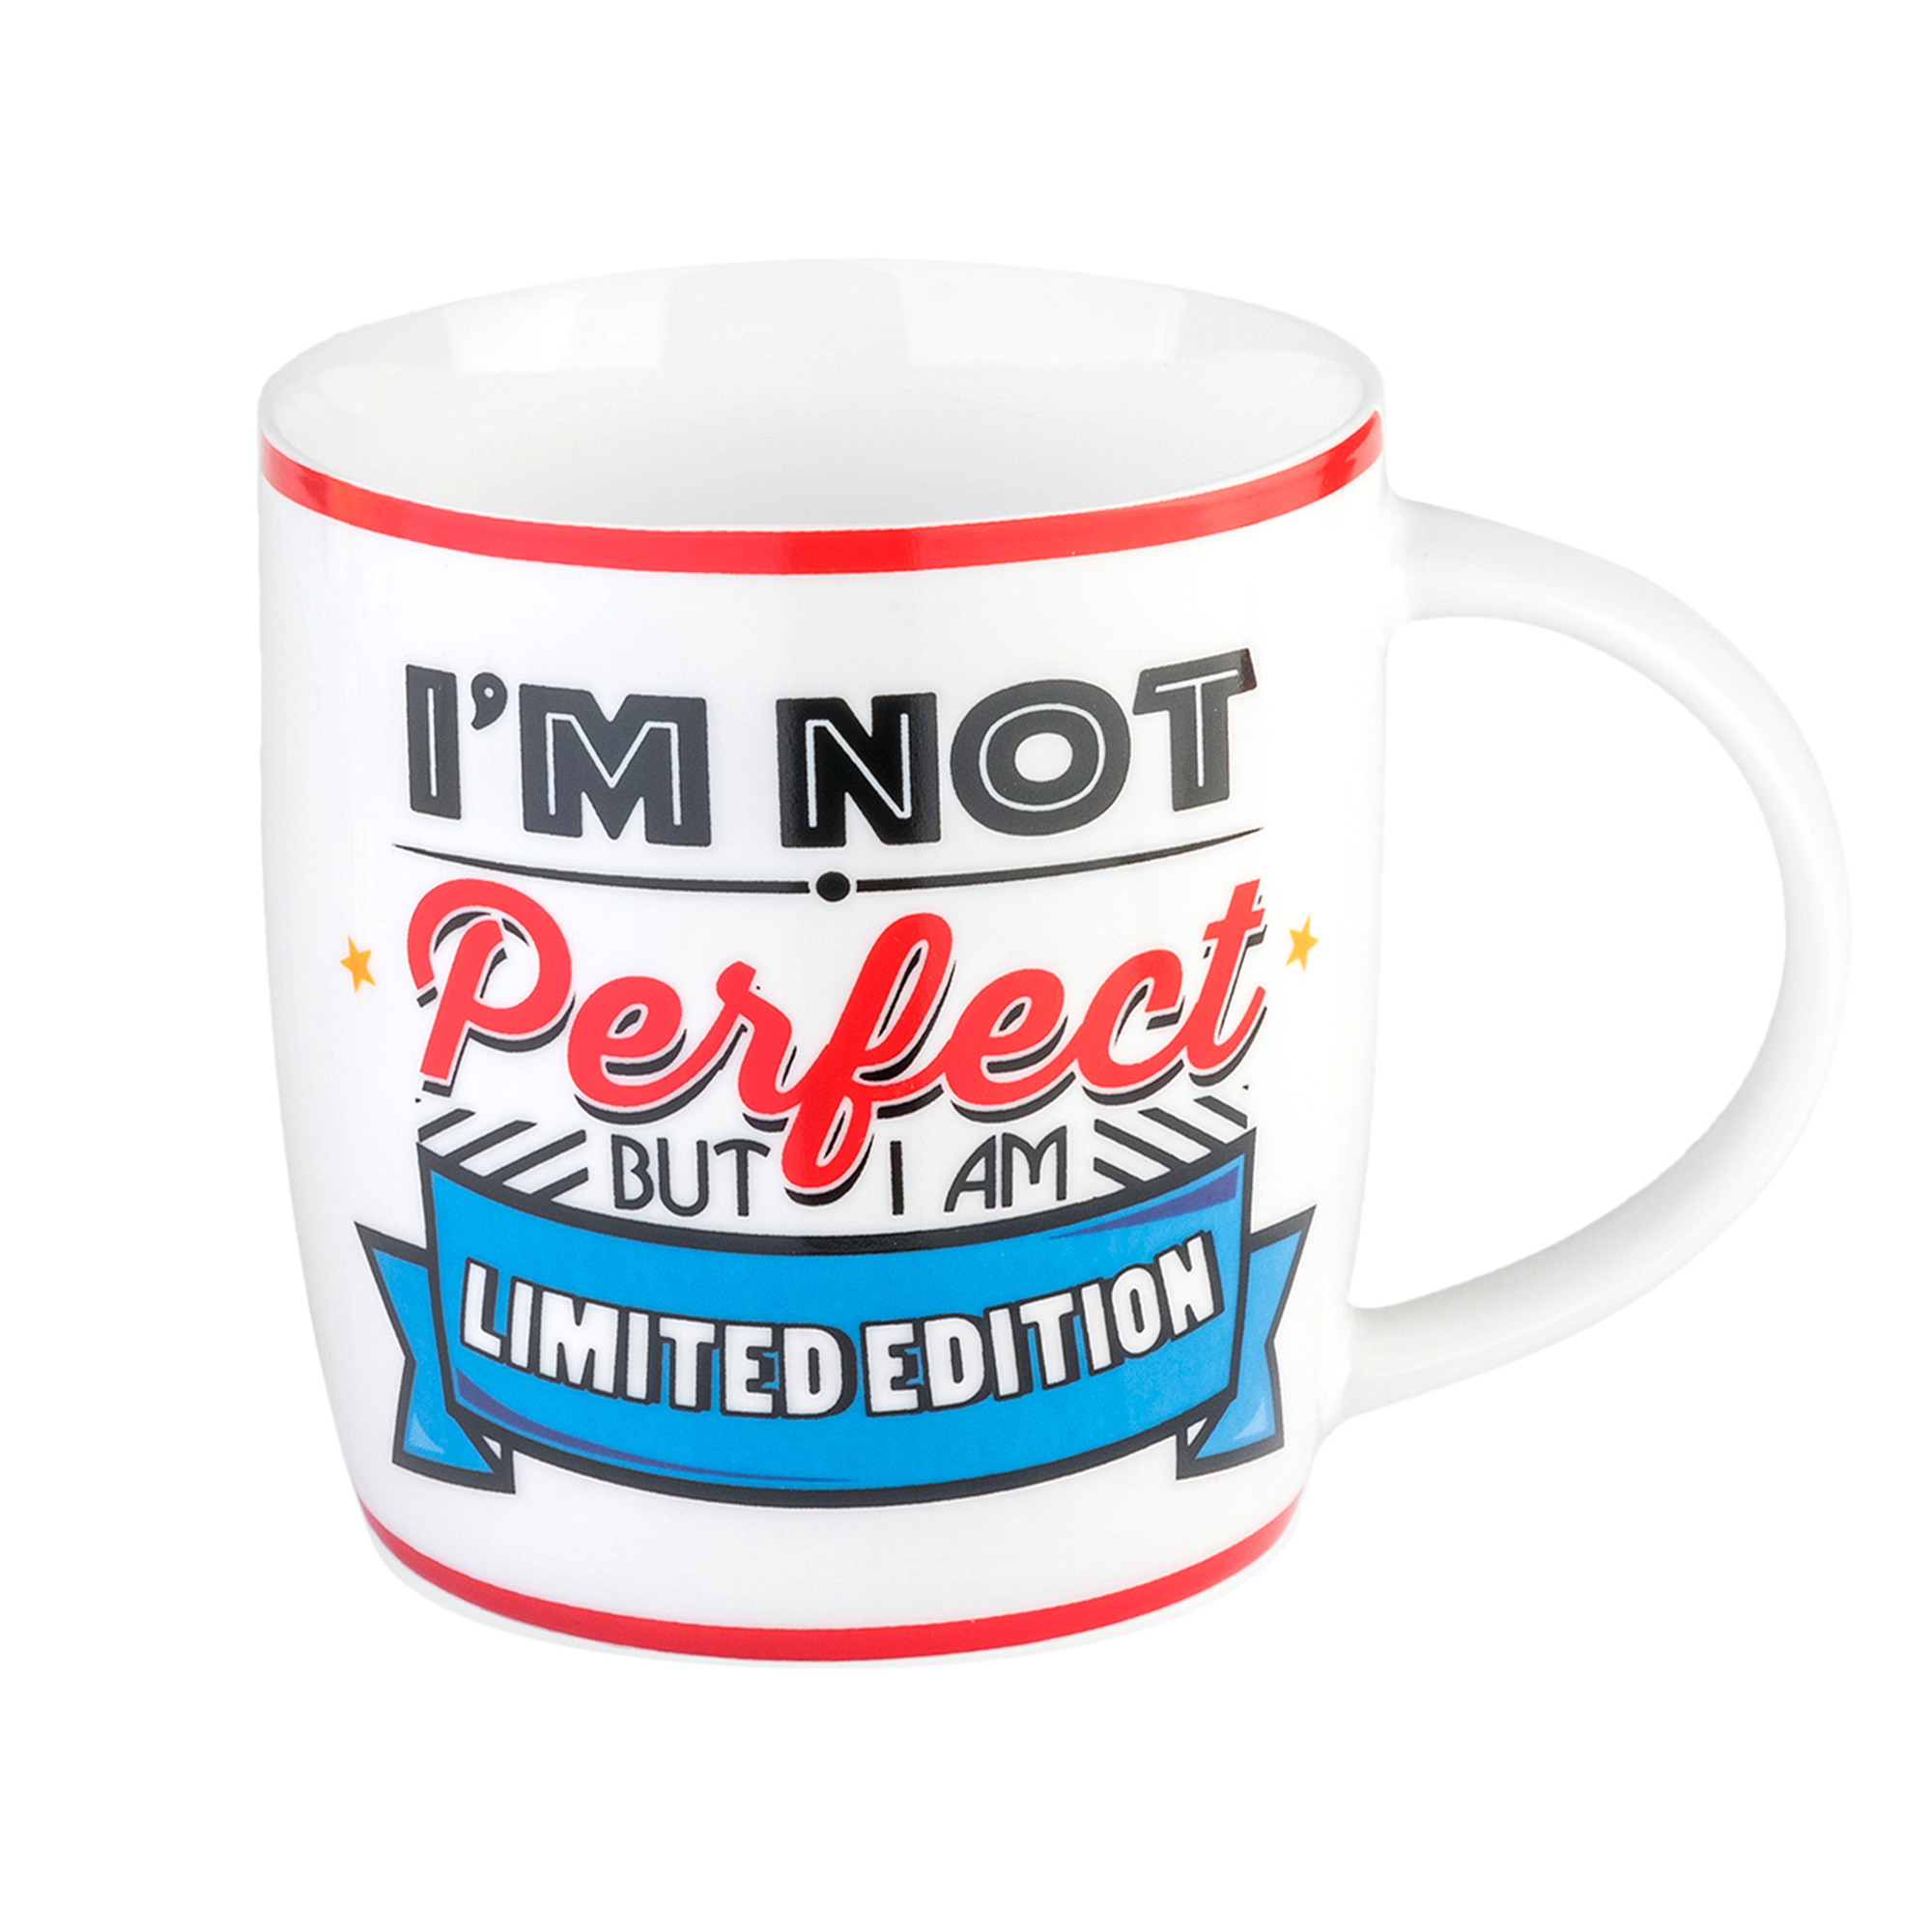 Legami BuongiornoMug Not Perfect 350ml